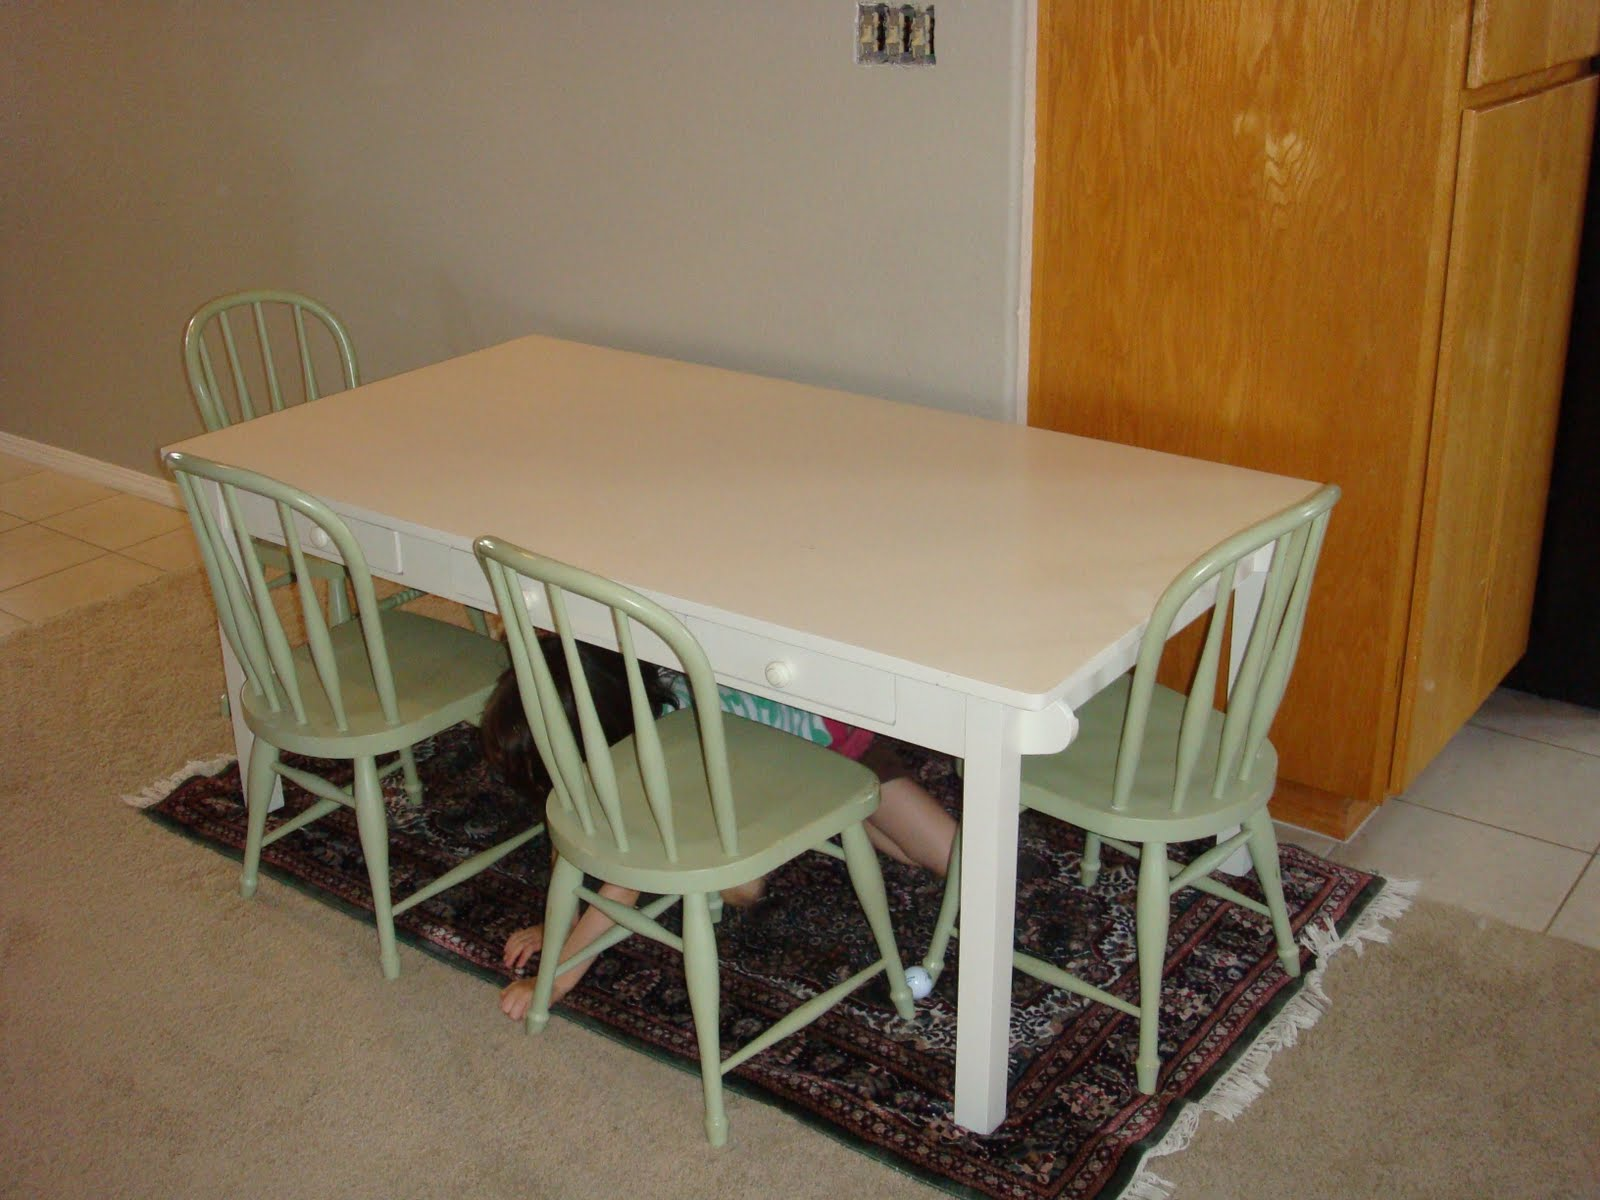 Places To Borrow Tables And Chairs Evac Chair 300h Mk4 The Homeschooling Journey On A Budget